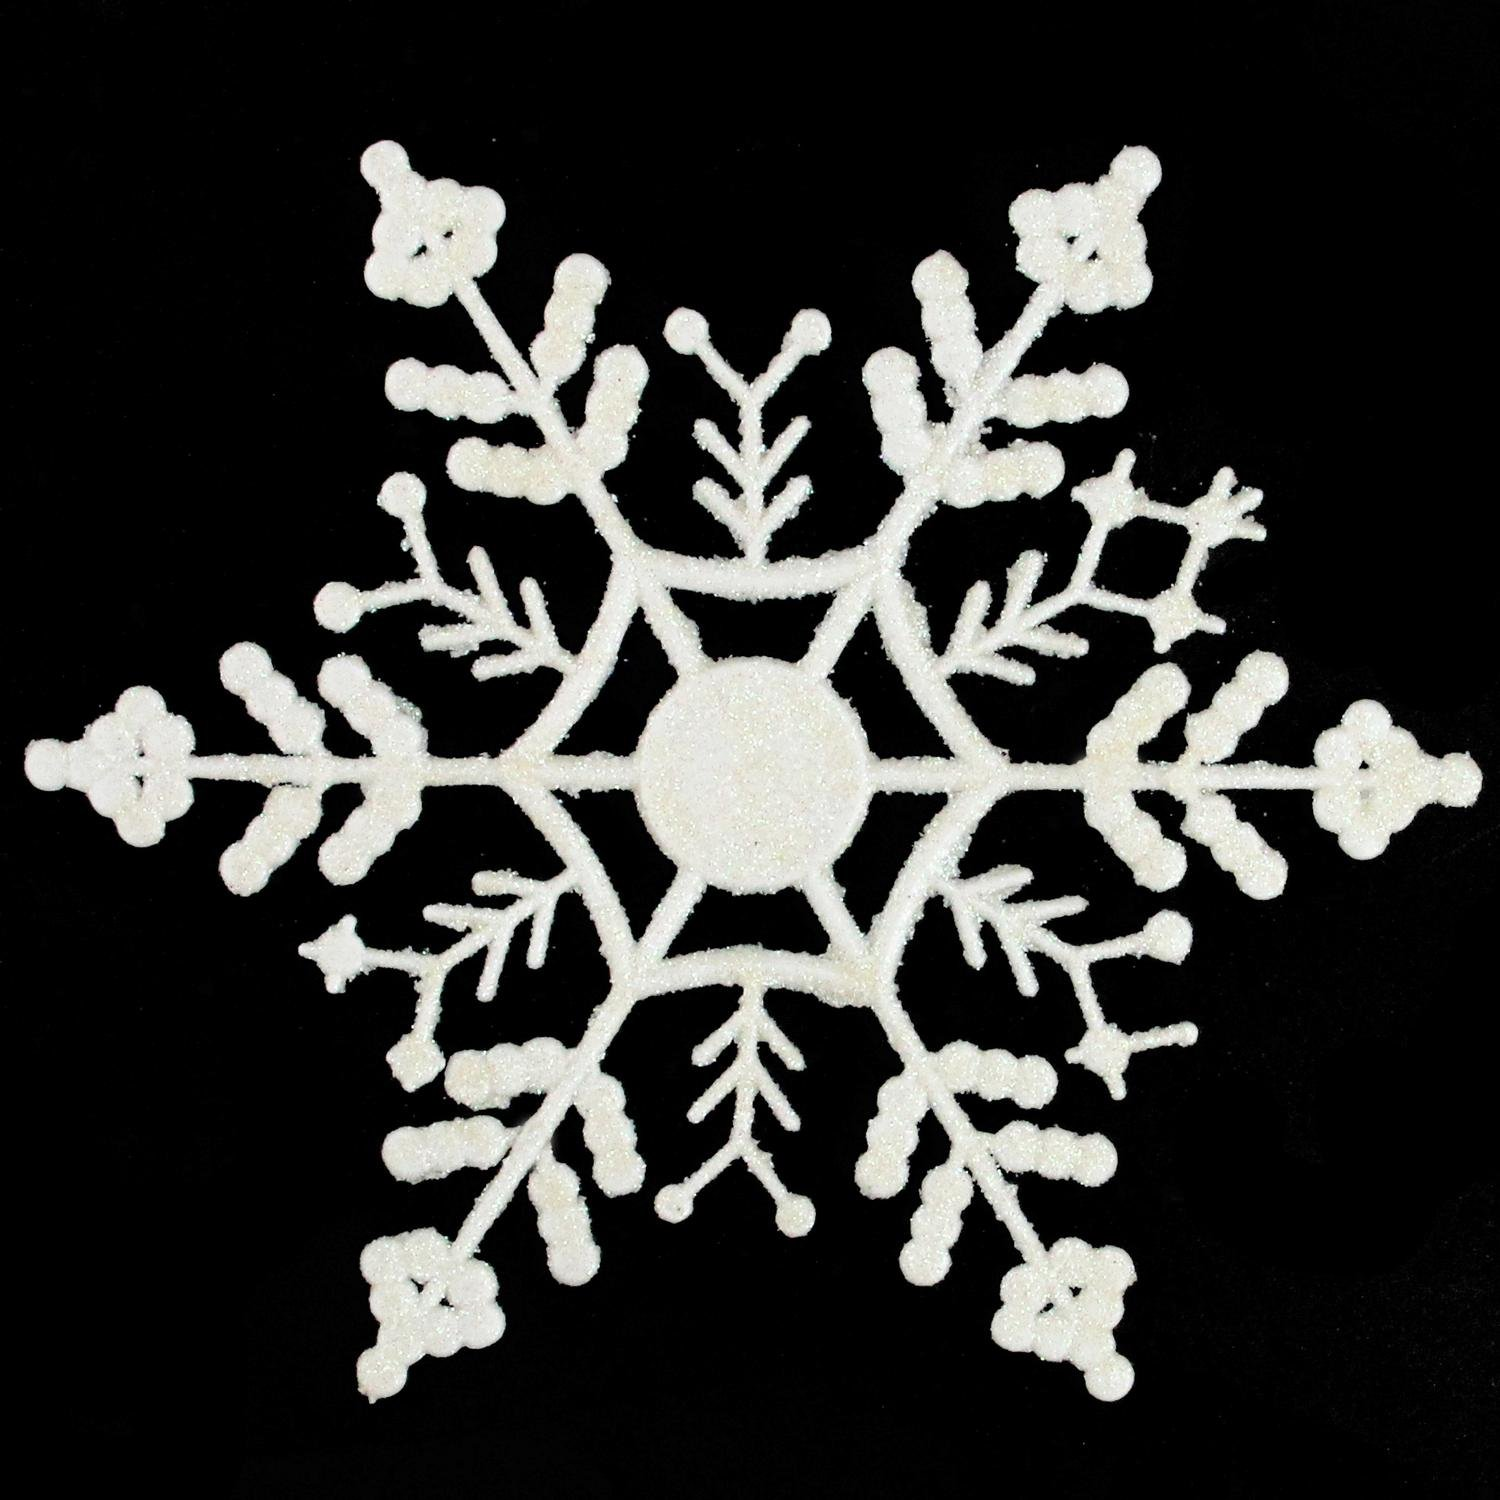 Winter White 3.75-inch Glitter Snowflake Christmas Ornaments Set of 24